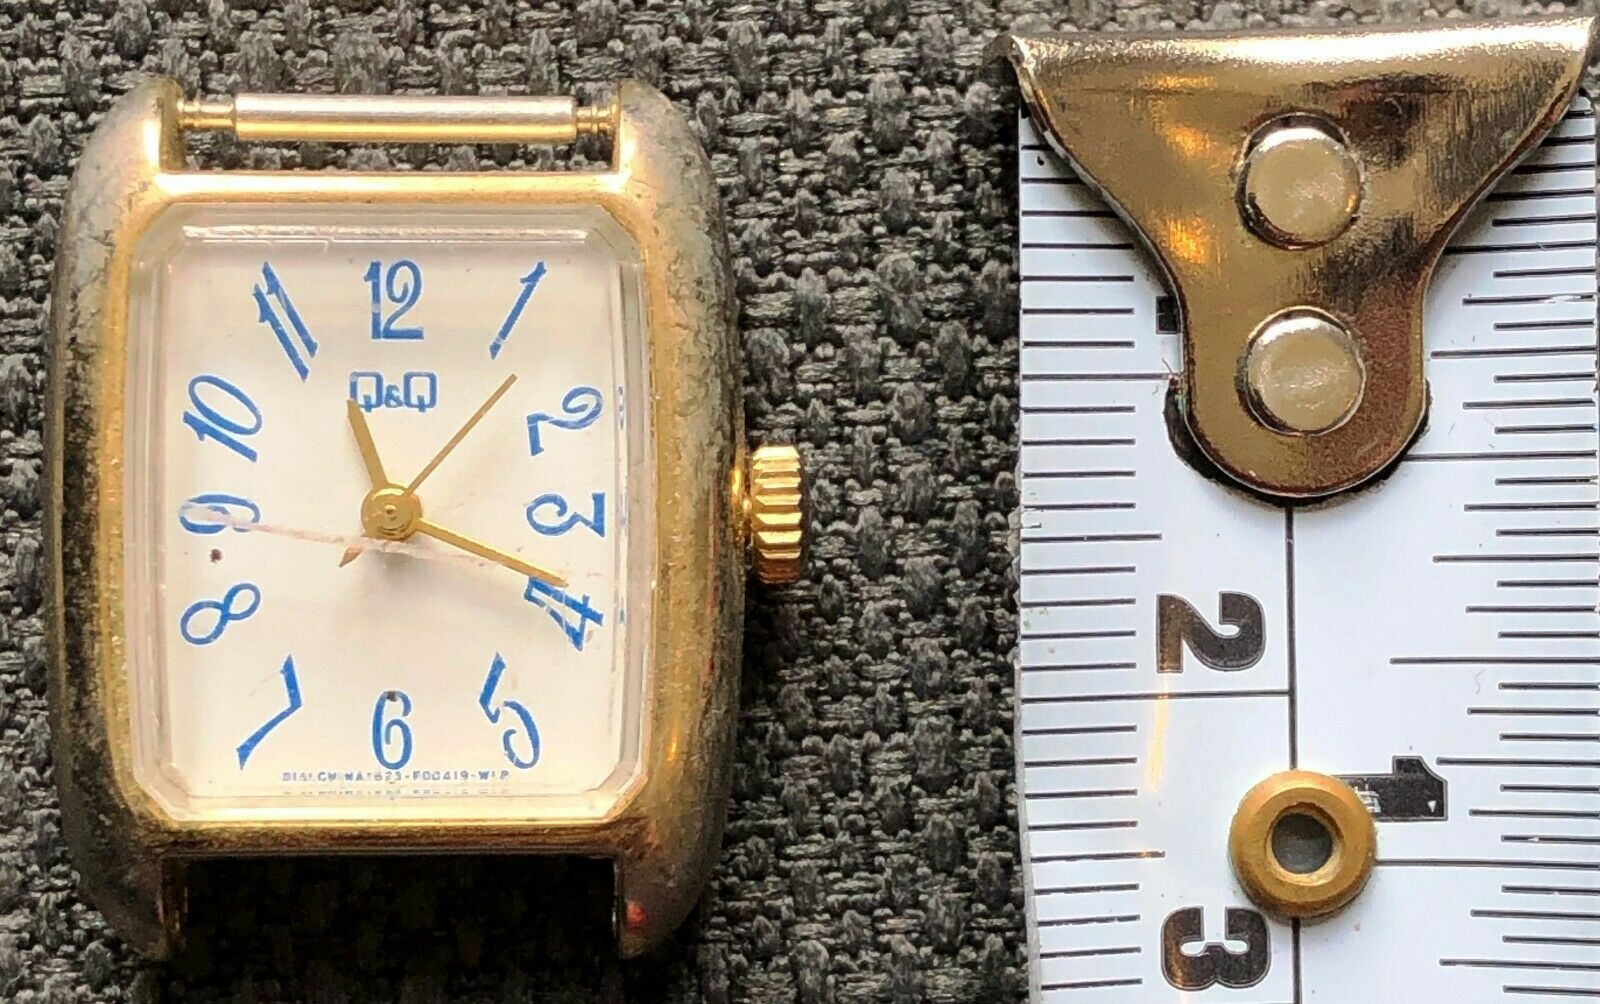 Vintage Q & Q Women's Watch - Functional - No Strap